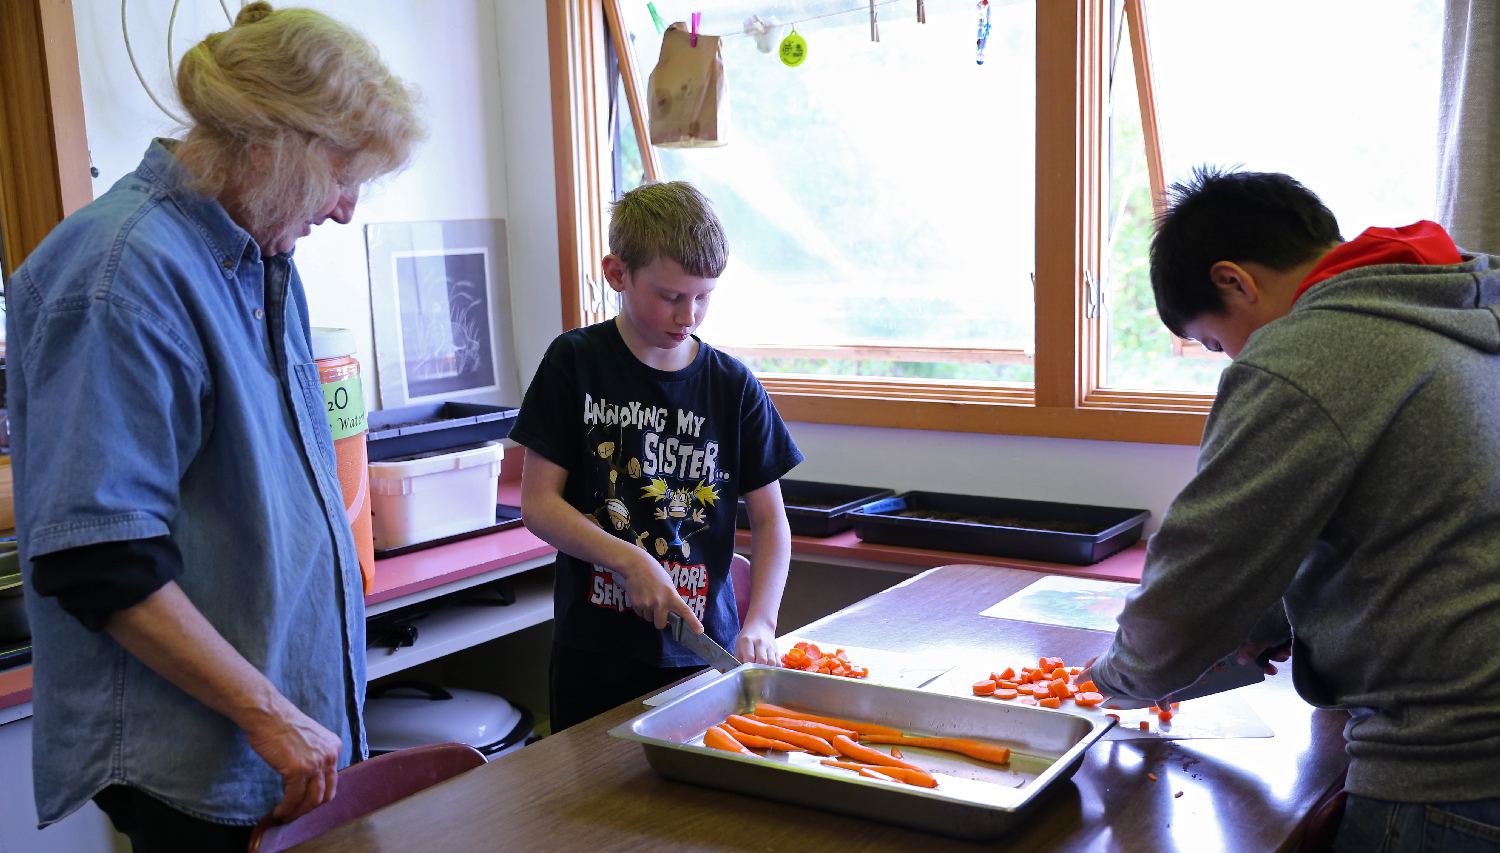 The intermediate and high school students, all boys, got lots of practice with knives on this day. Cathy visits with Ben and Myles while they cut up carrots for pickling. Cathy cooks breakfast and lunch for the students, keeps the place clean, and is a calm and wise presence.